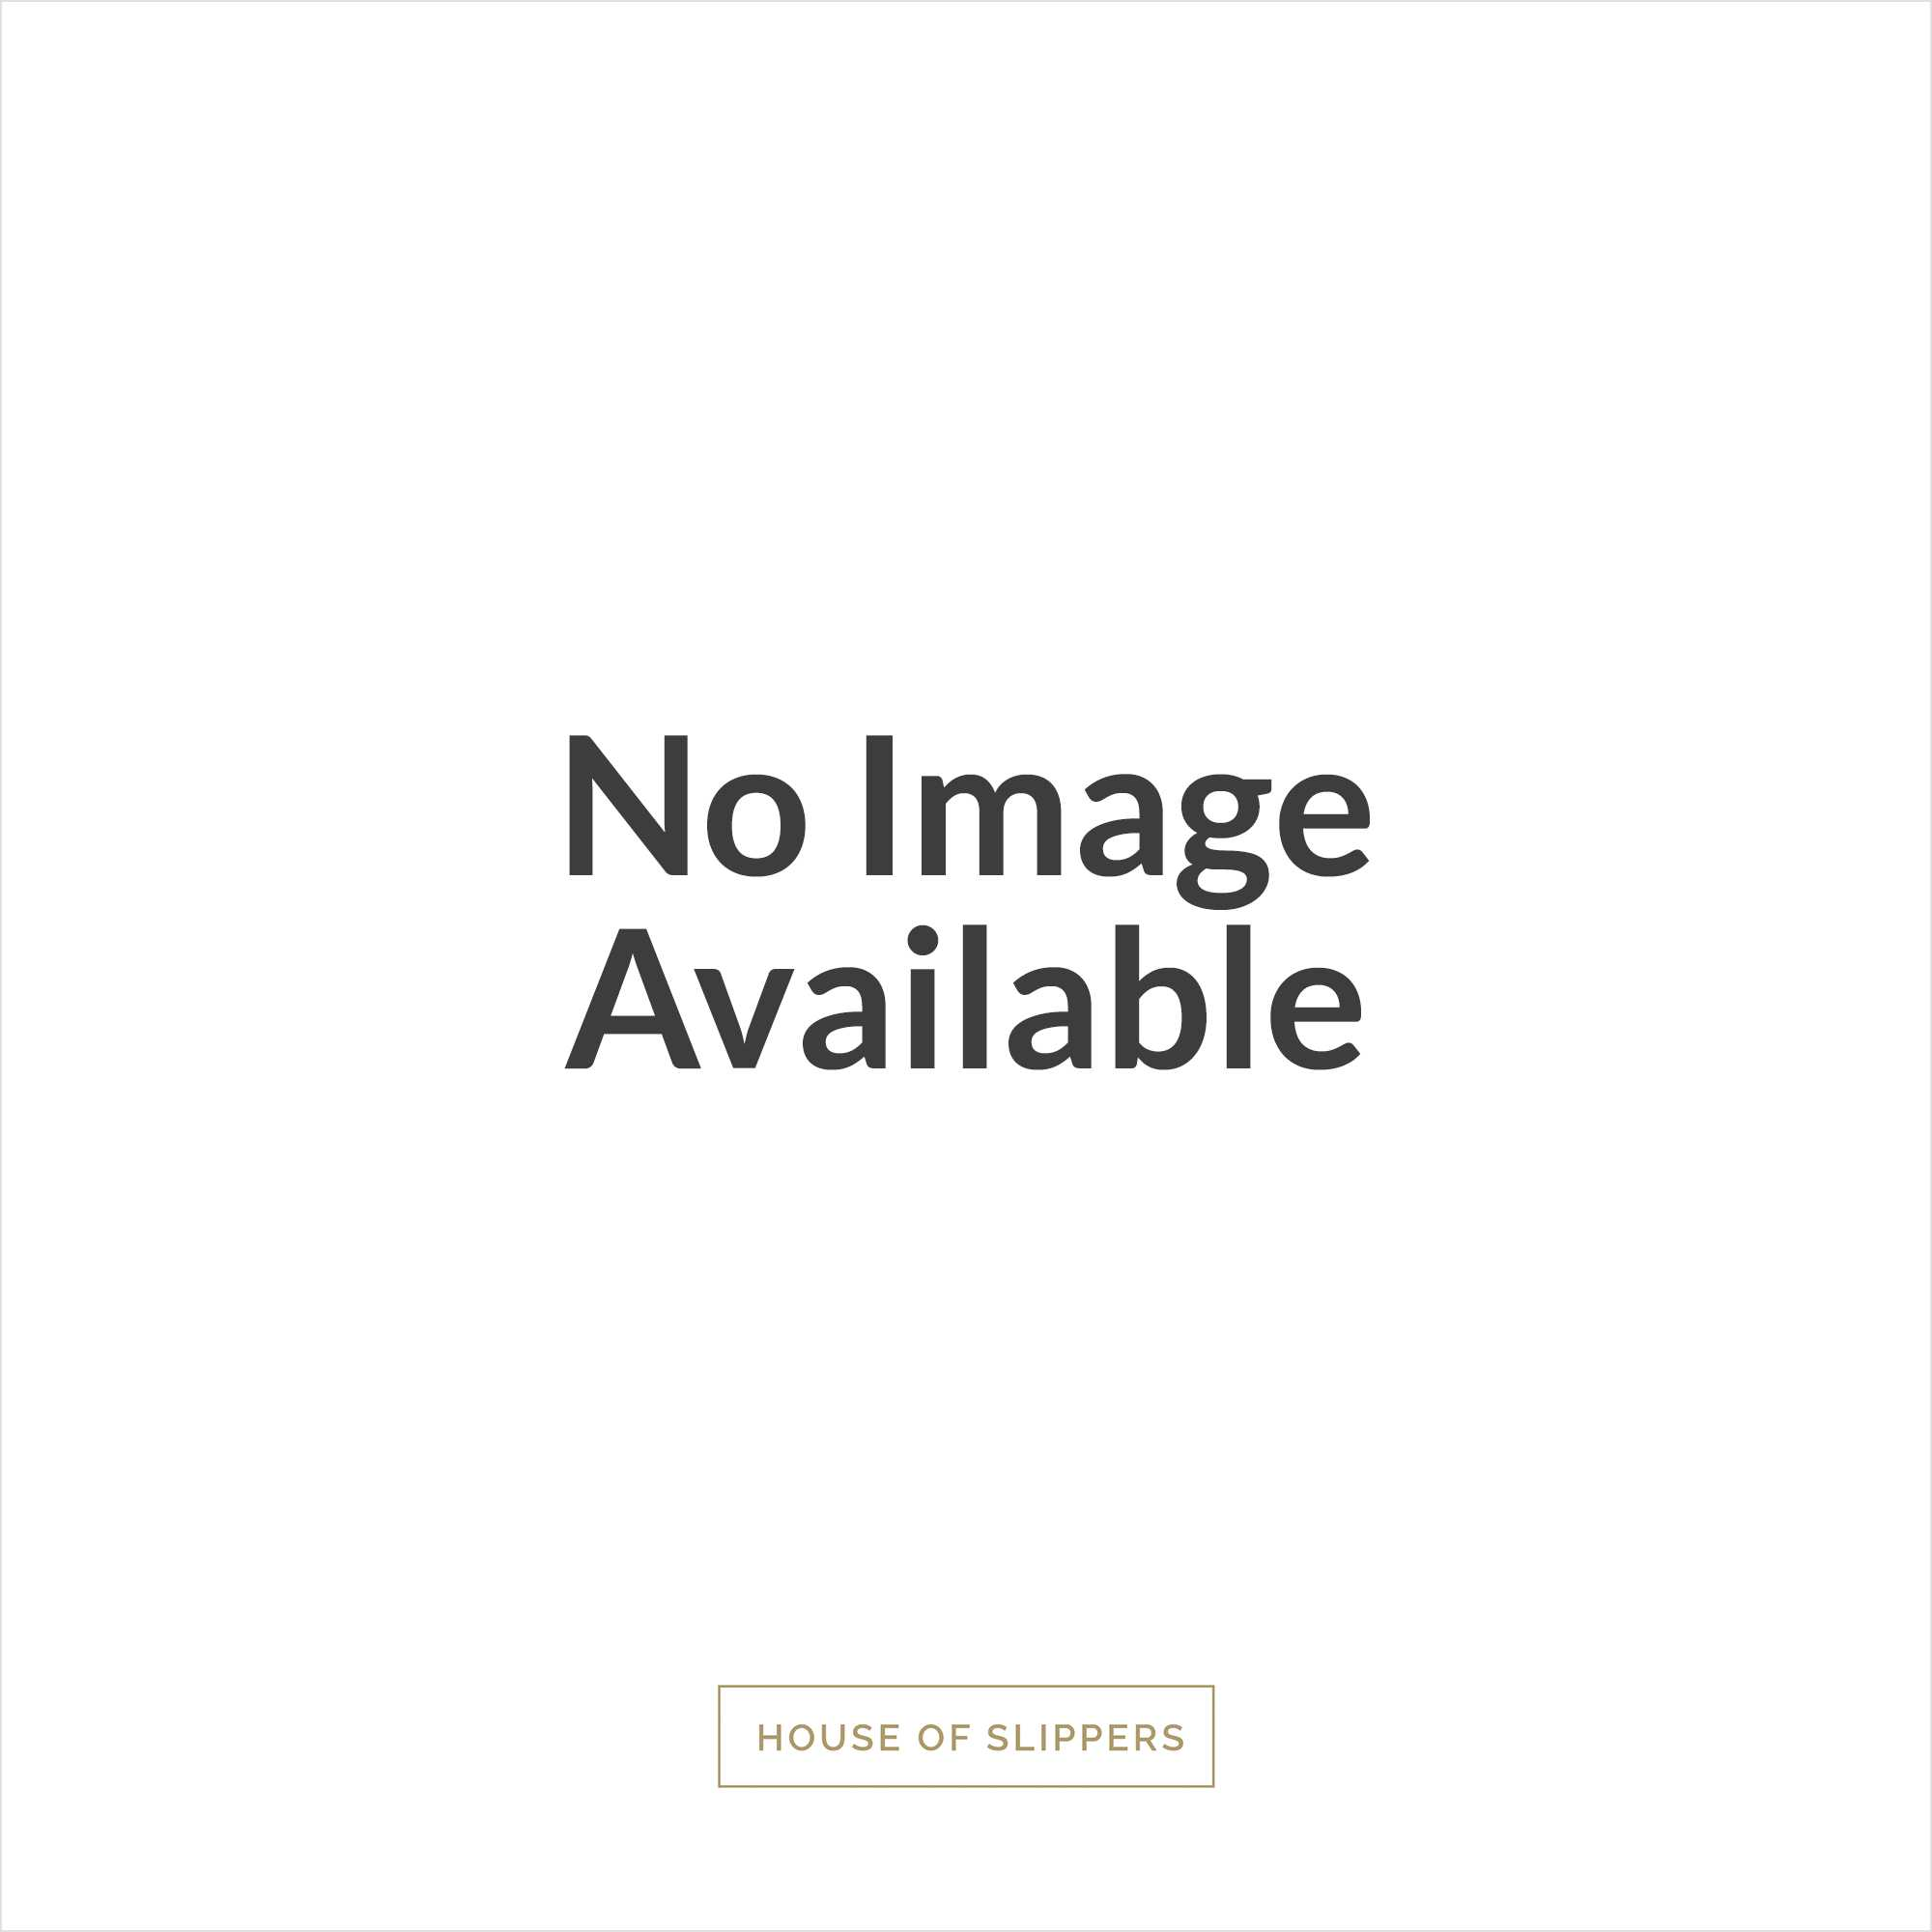 9b83a01d455 Womens UGG Slippers | By House of Slippers